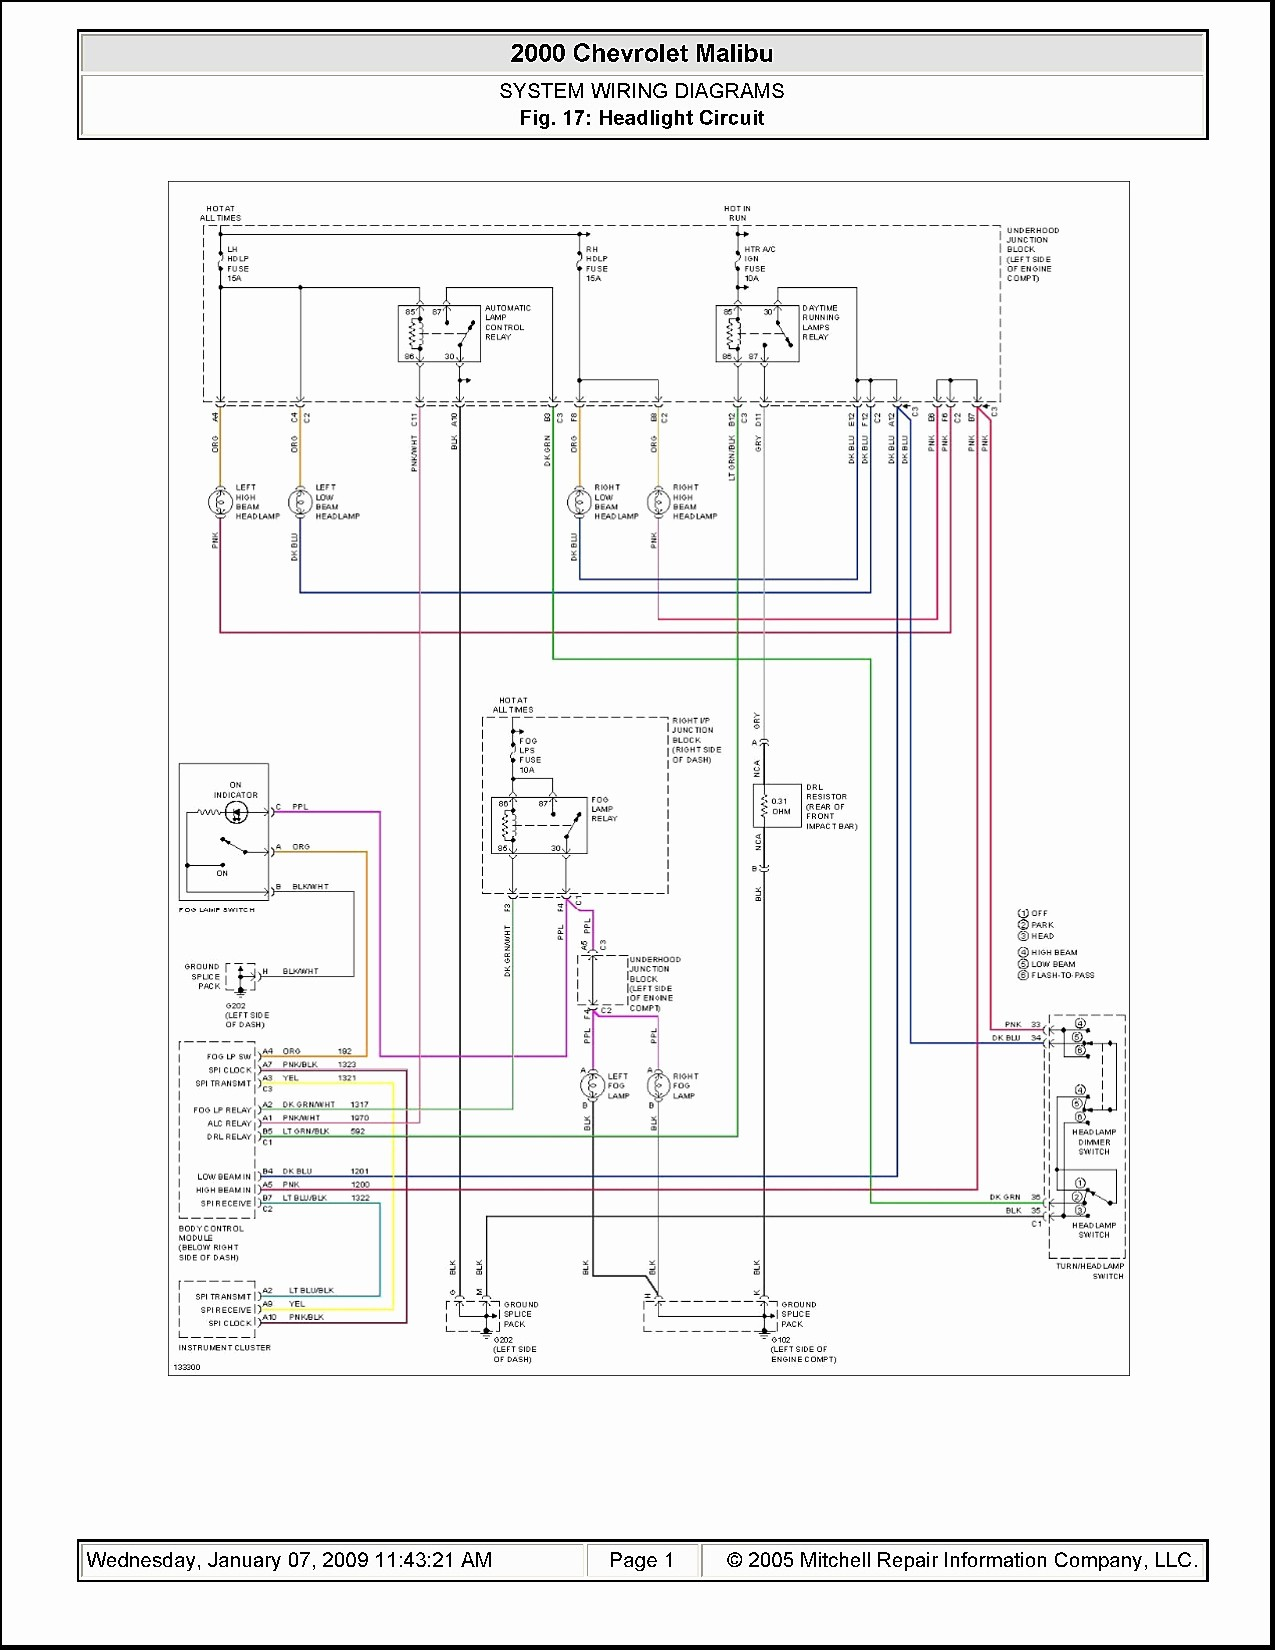 Santa Fe Engine Fuse Box Wiring Library 2003 Hyundai Elantra Diagram Free Diagrams Electrical Work 2006 Sonata